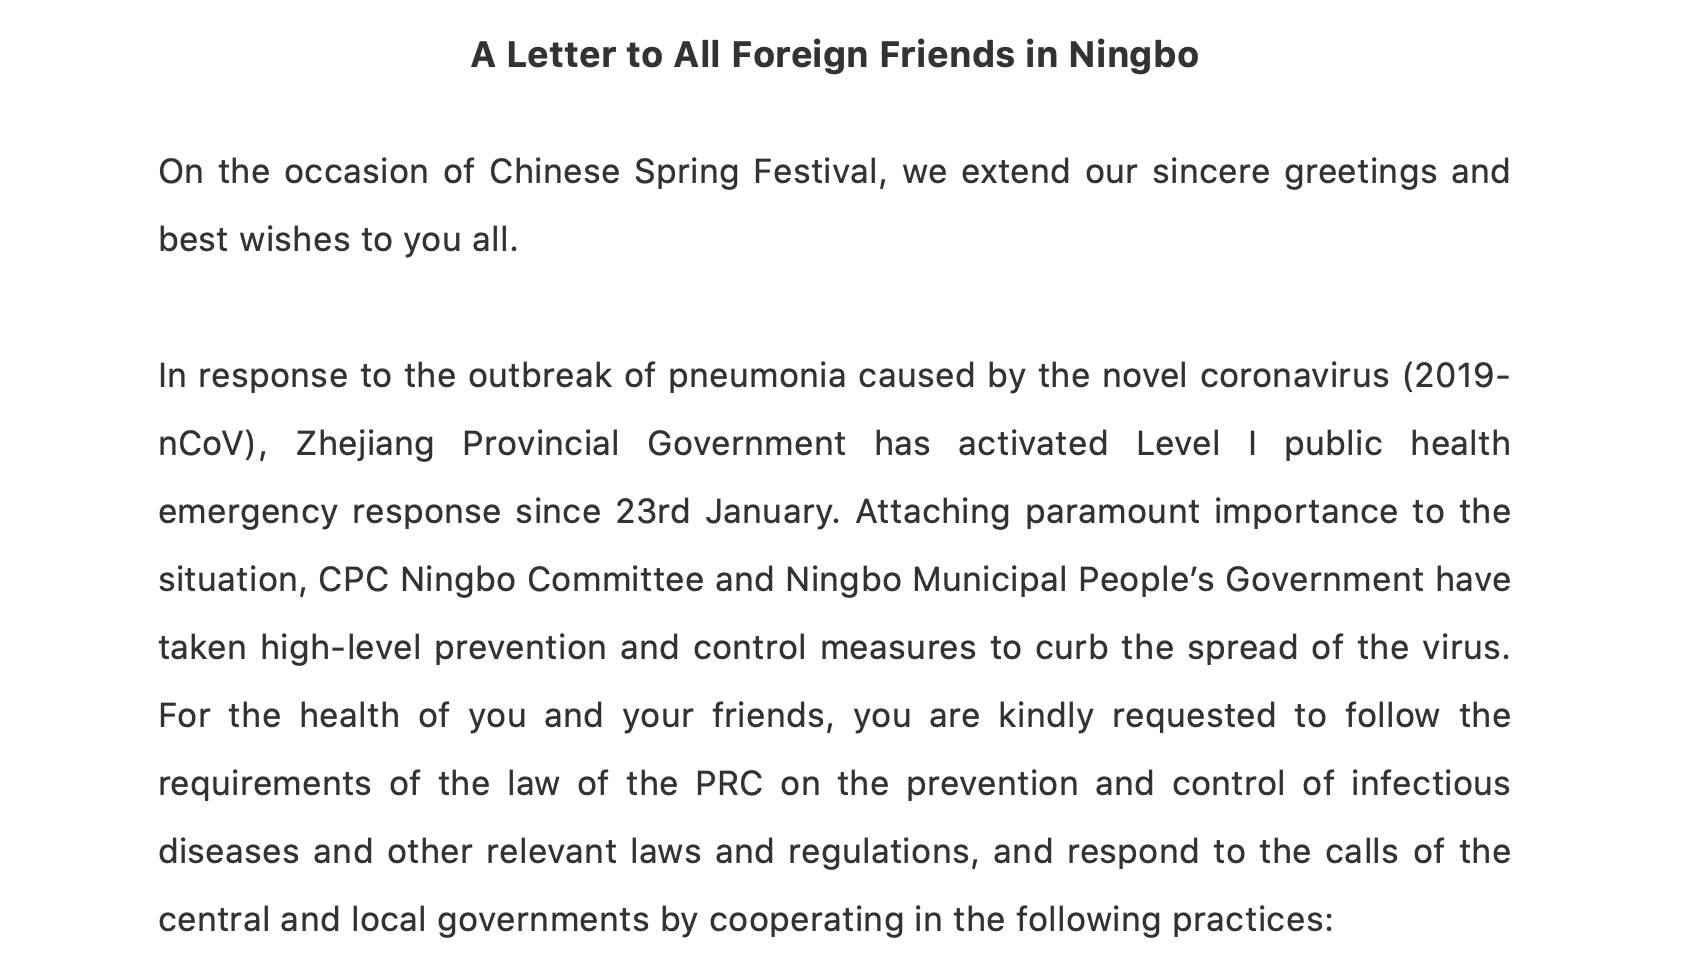 A Letter to All Foreign Friends in Ningbo